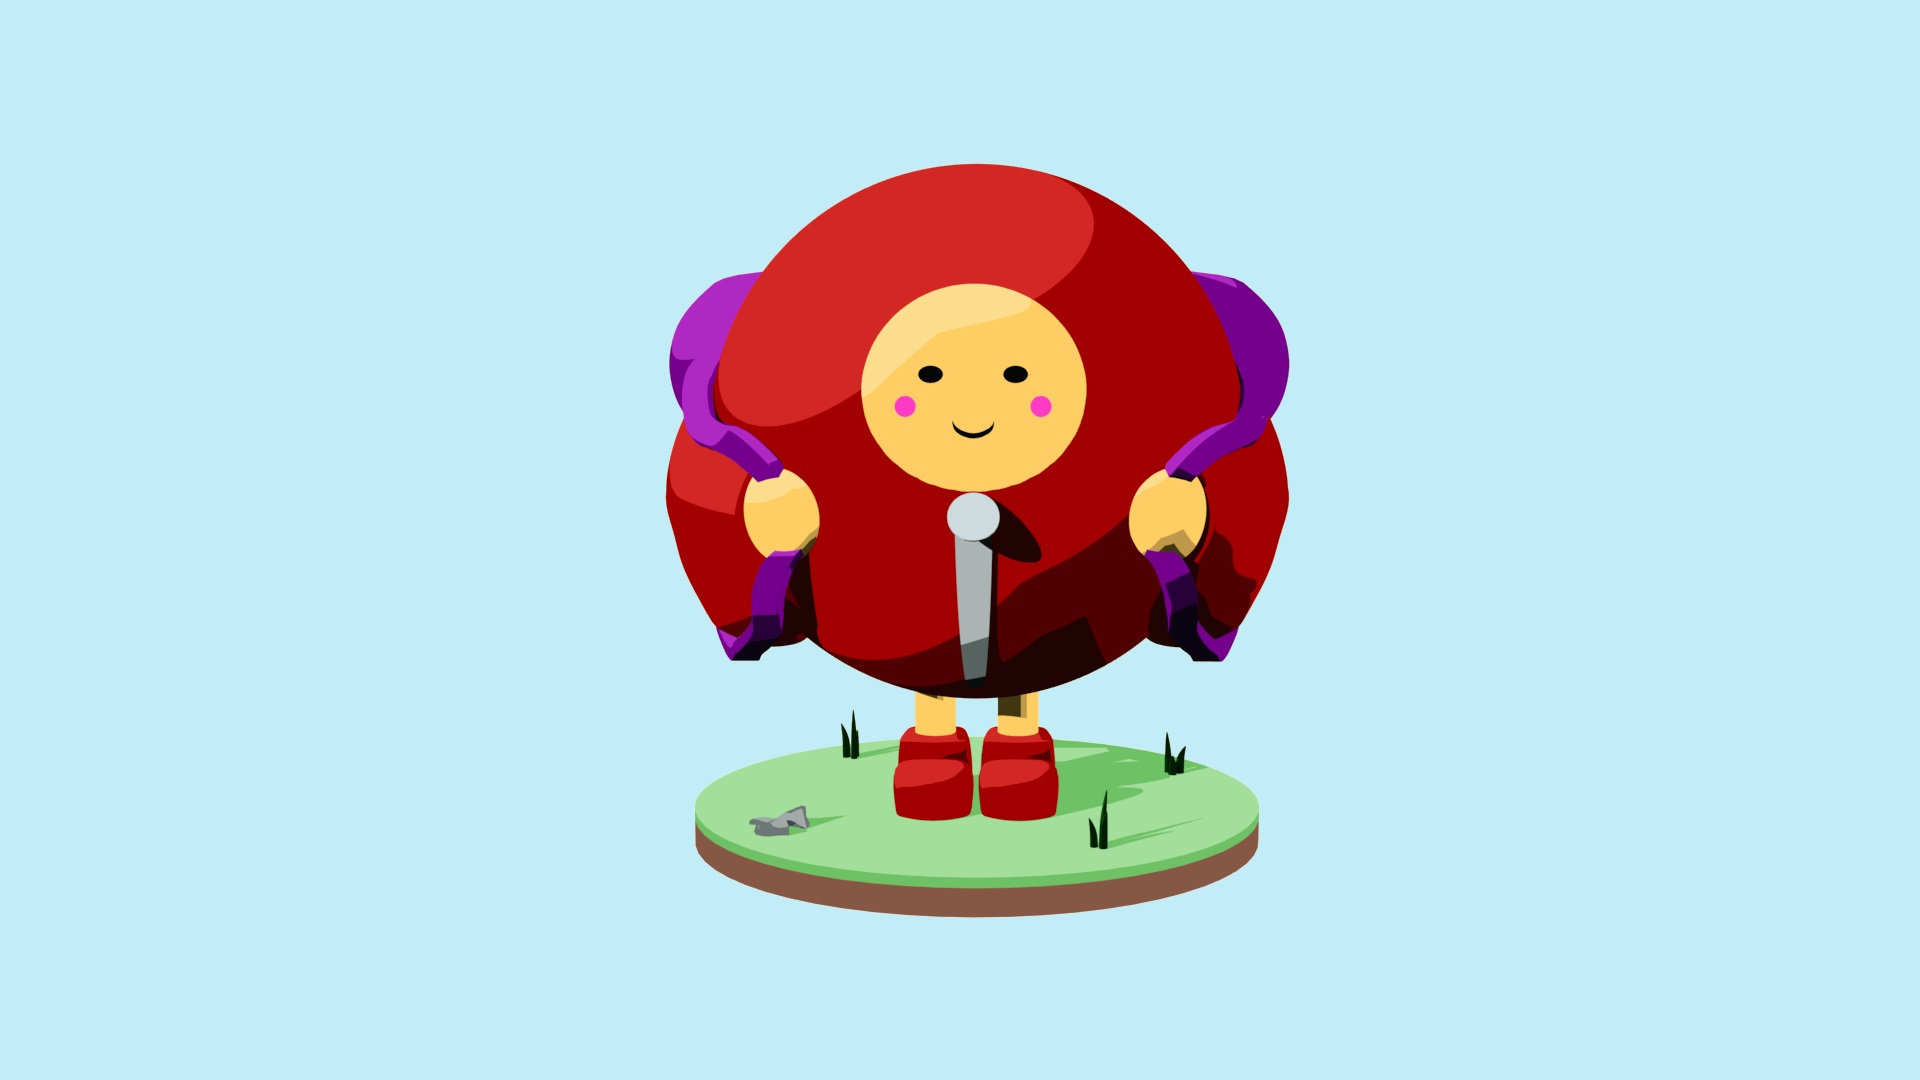 A red, spherical character is smiling while carrying a purple backpack. It stands on a tile of grass and pebbles against a pale blue background.